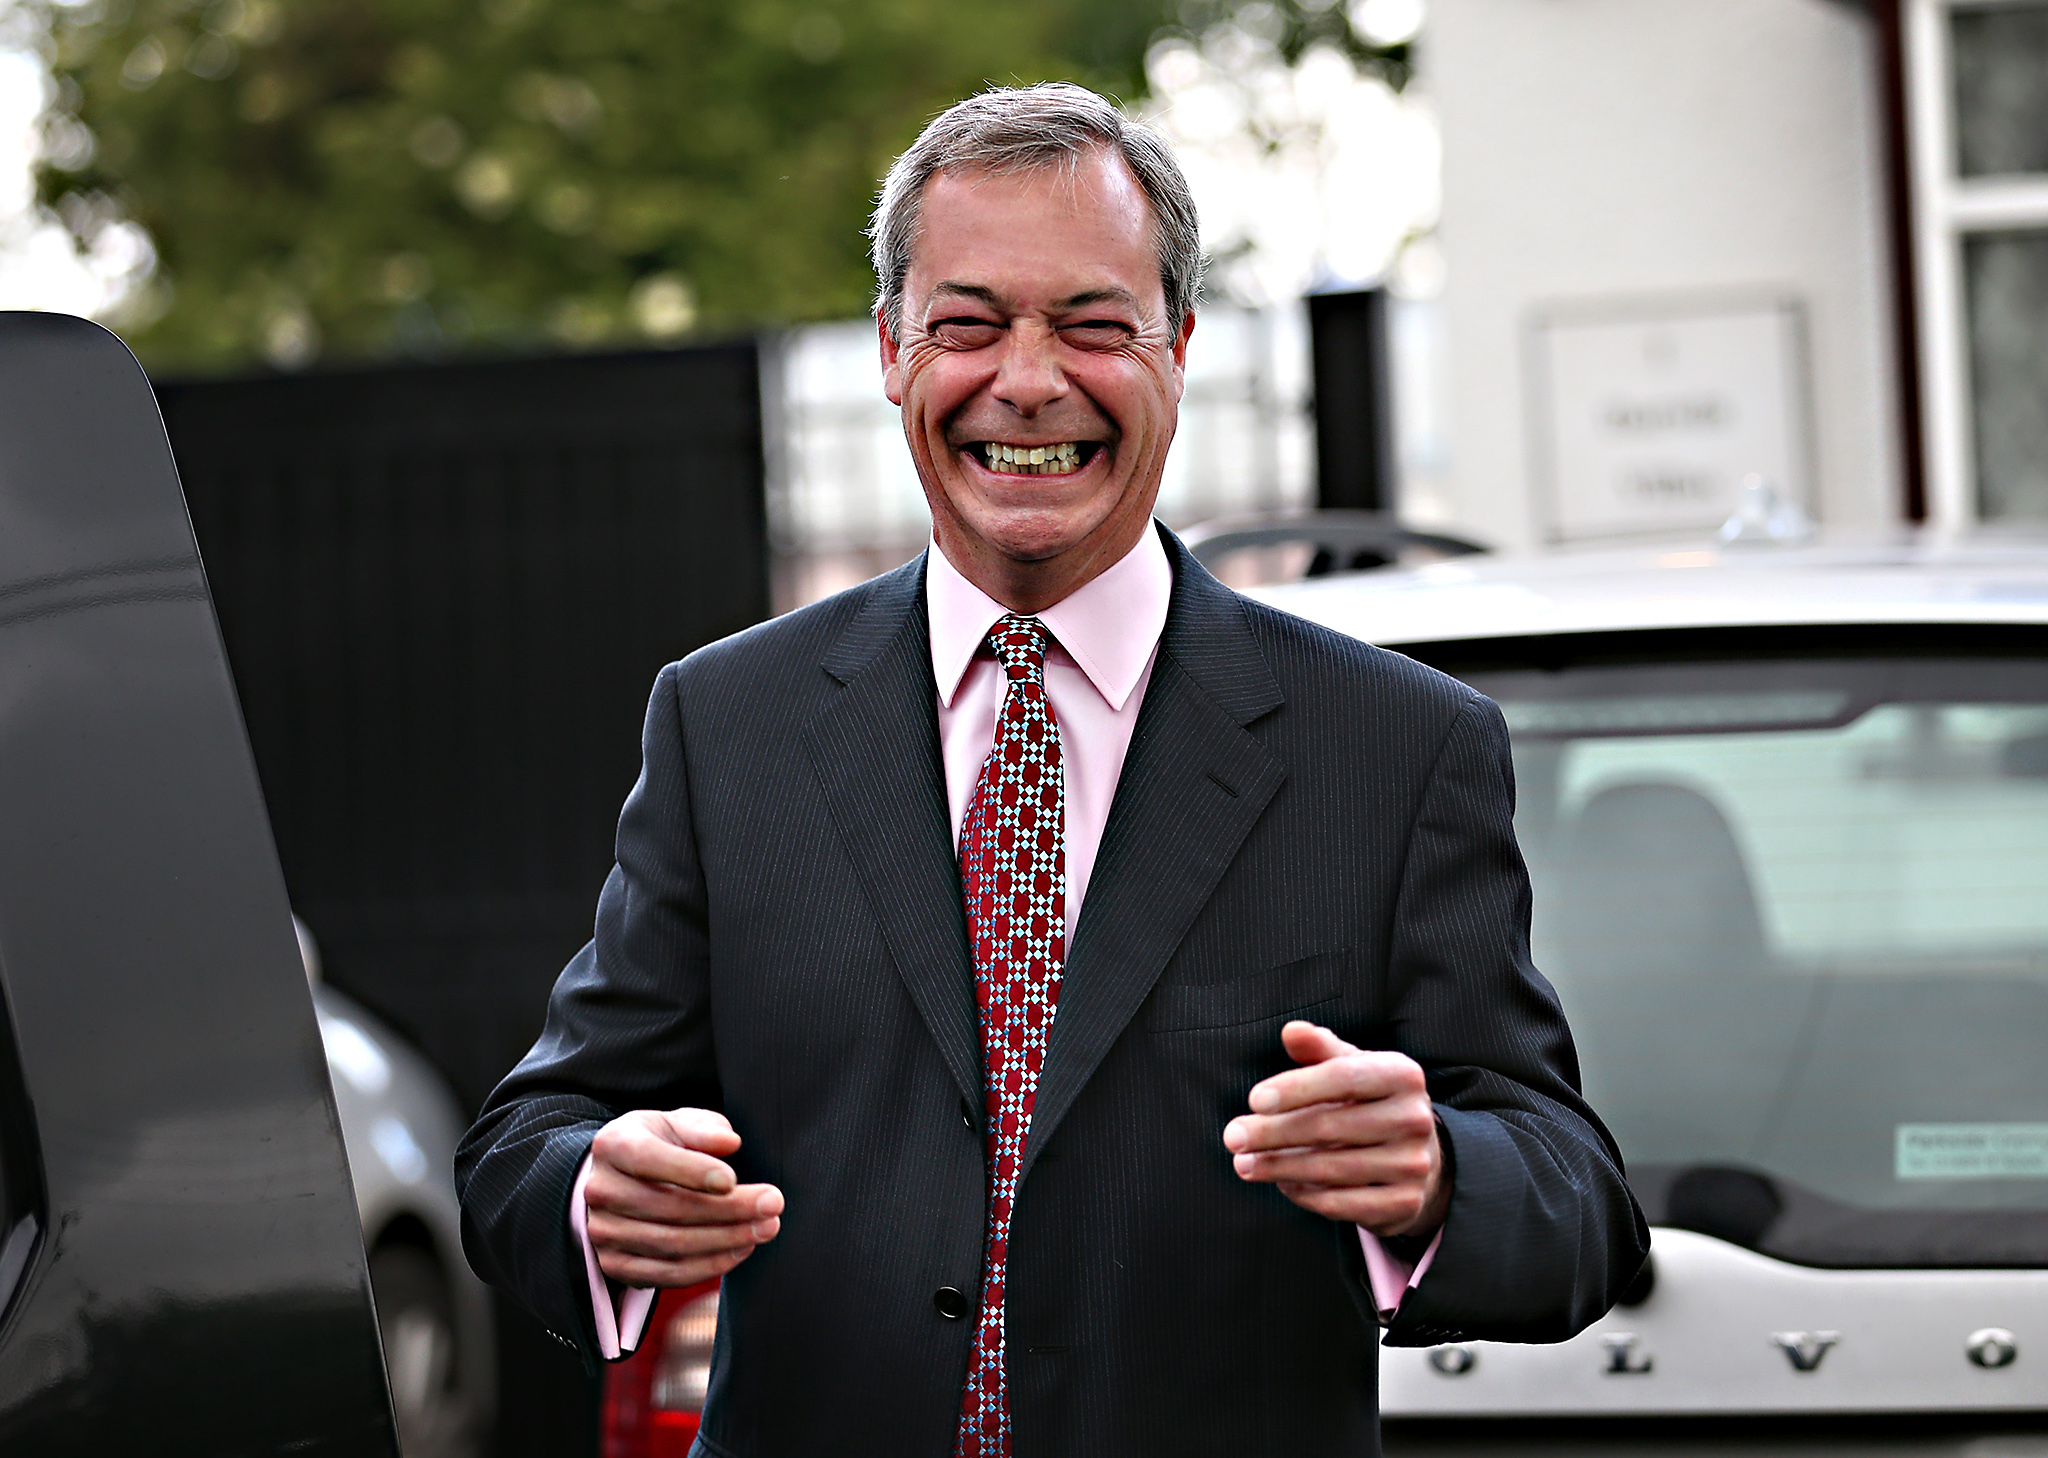 United Kingdom Independence Party (UKIP) leader Nigel Farage smiles as he talks to reporters. Early local election results announced overnight show substantial gains for UKIP.